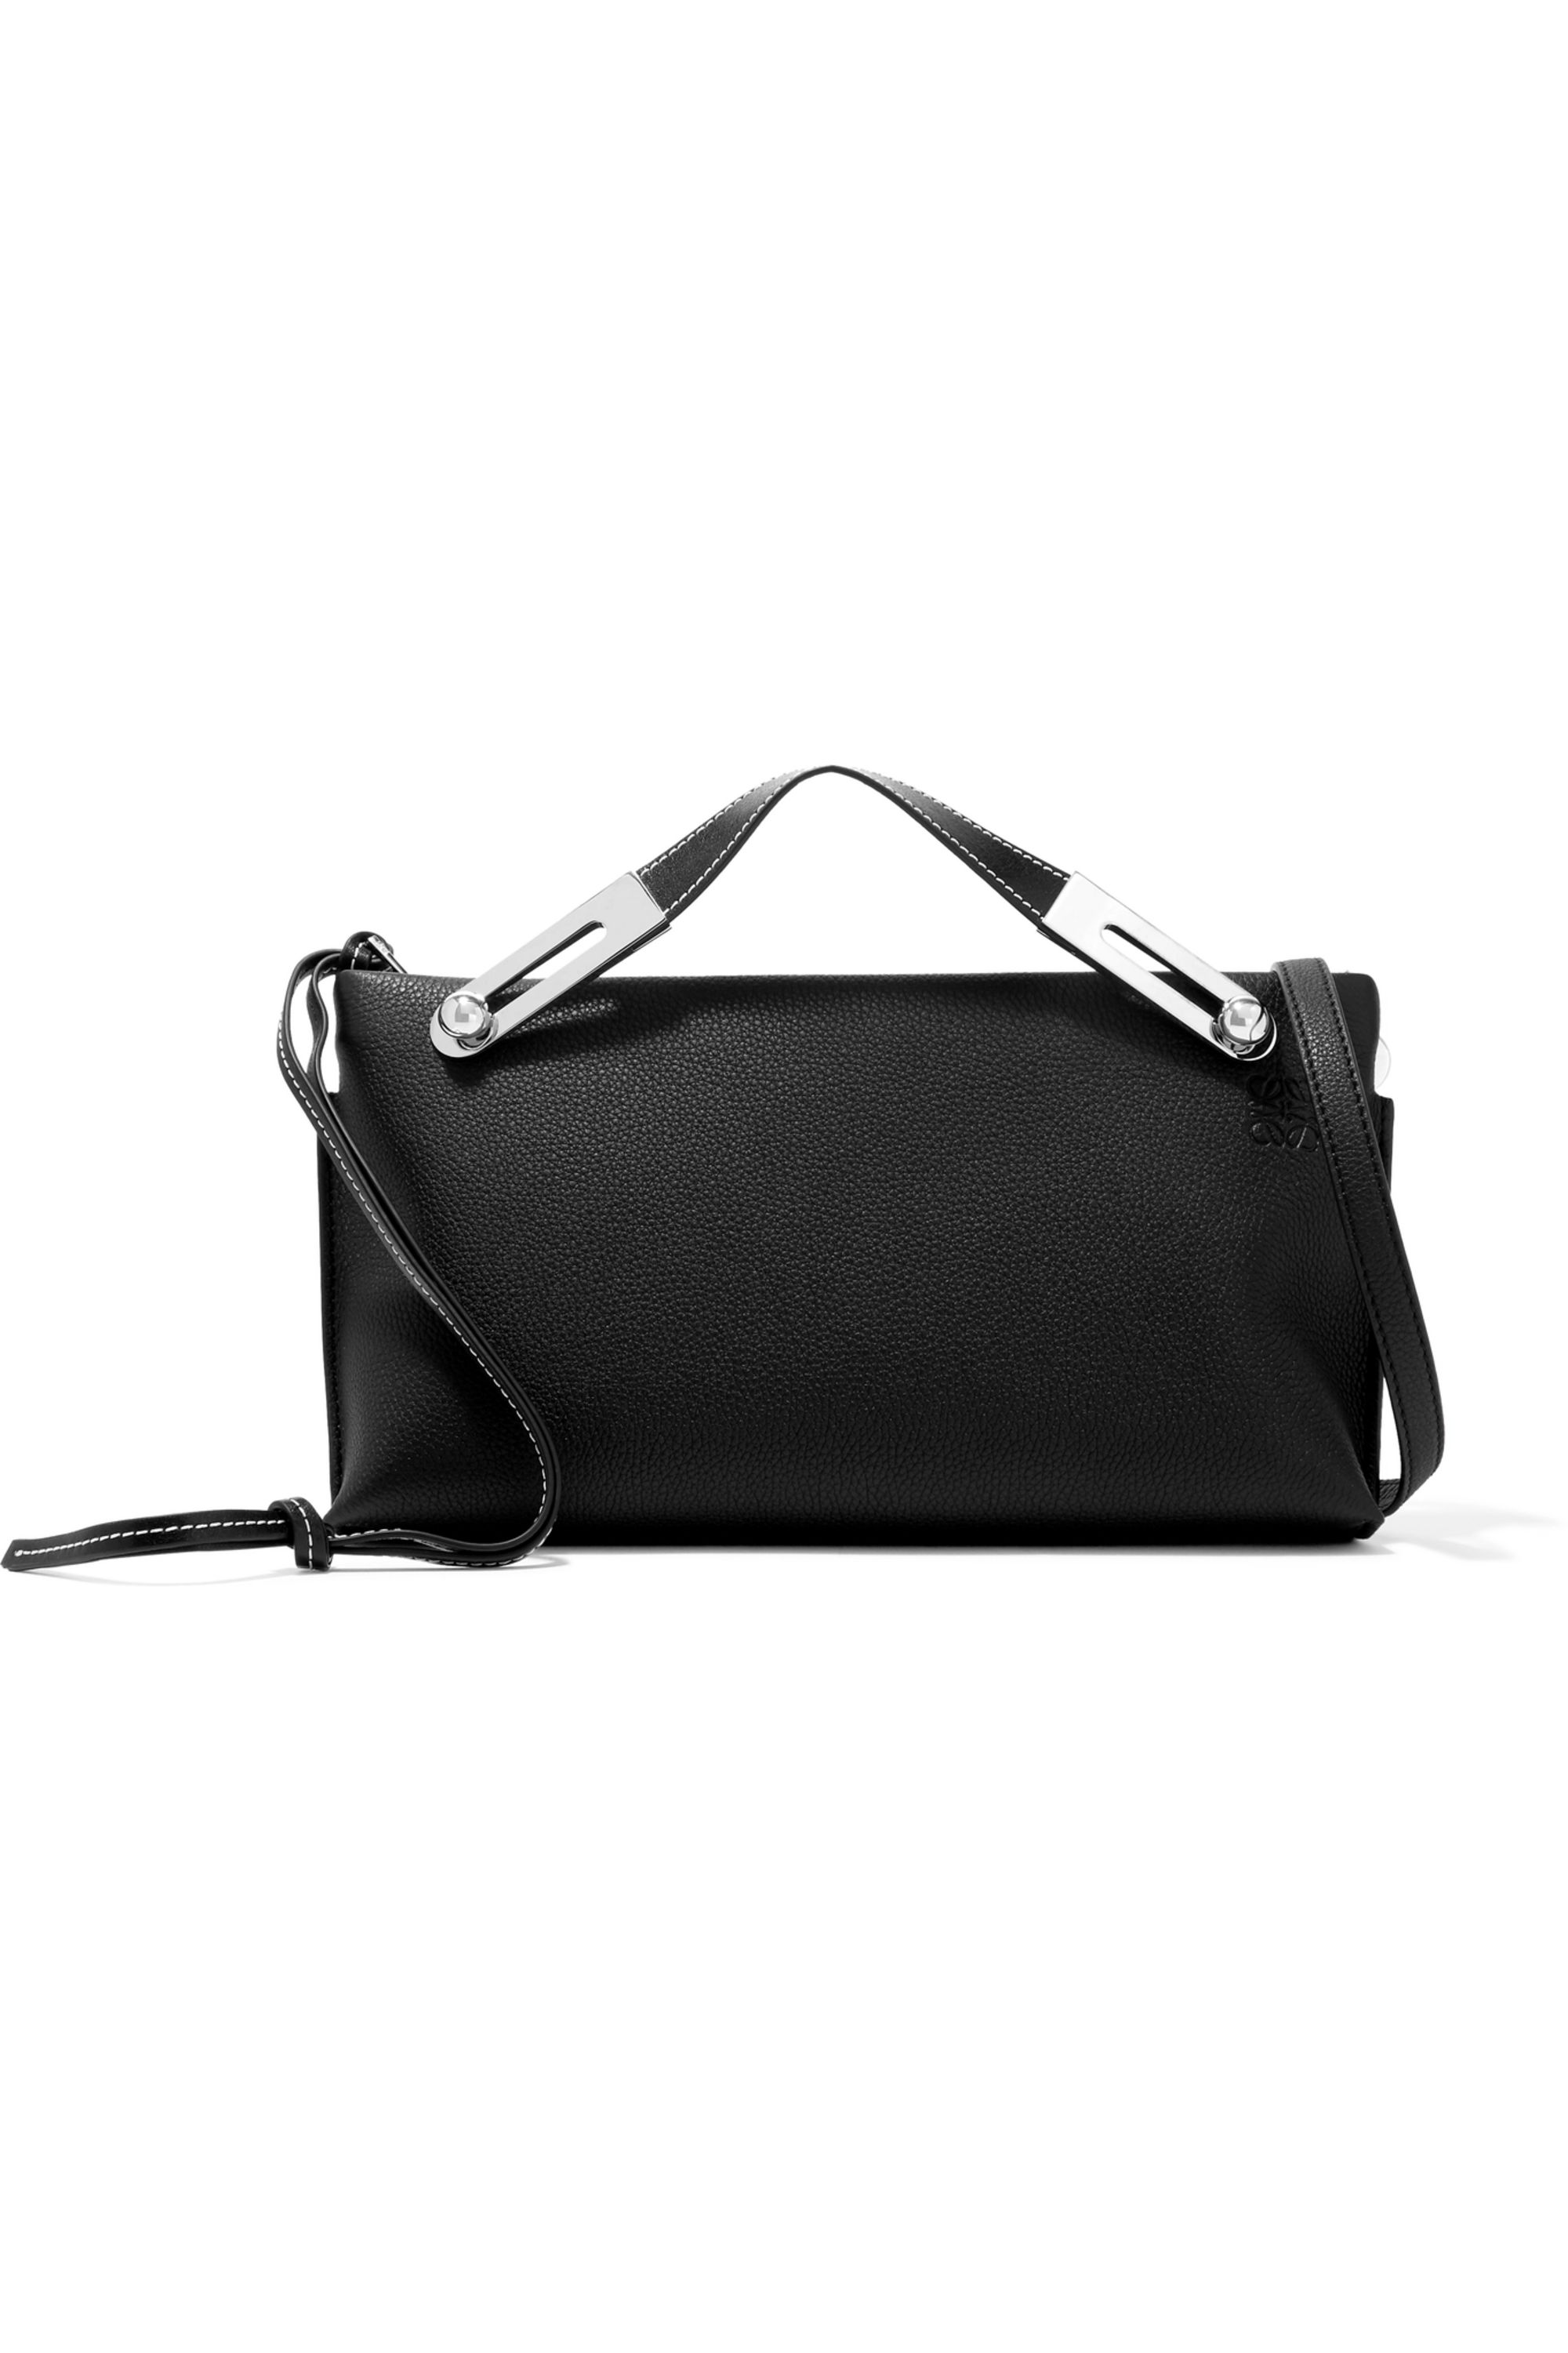 Loewe Missy small textured-leather shoulder bag